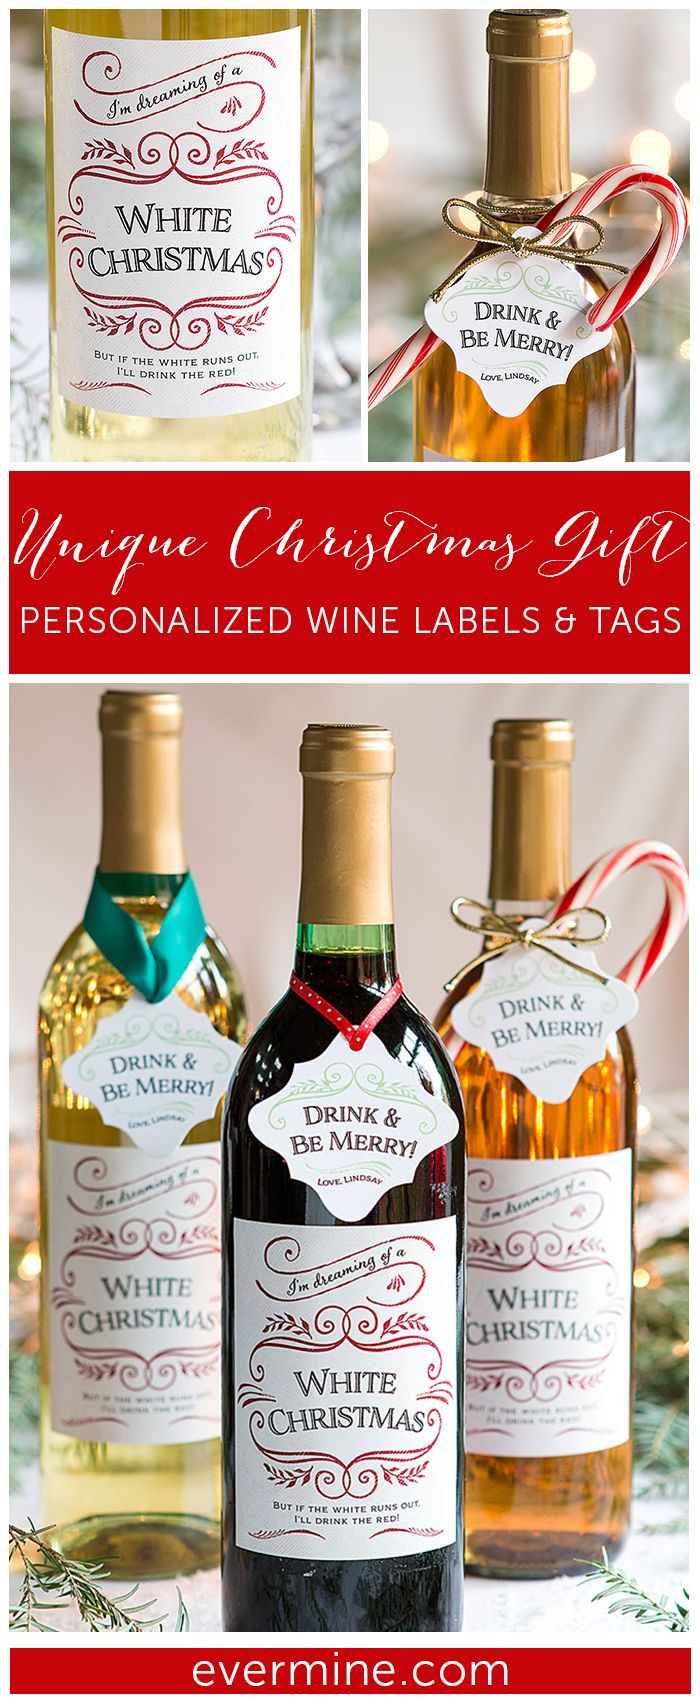 White Christmas Holiday Wine Labels + Label Wording Ideas